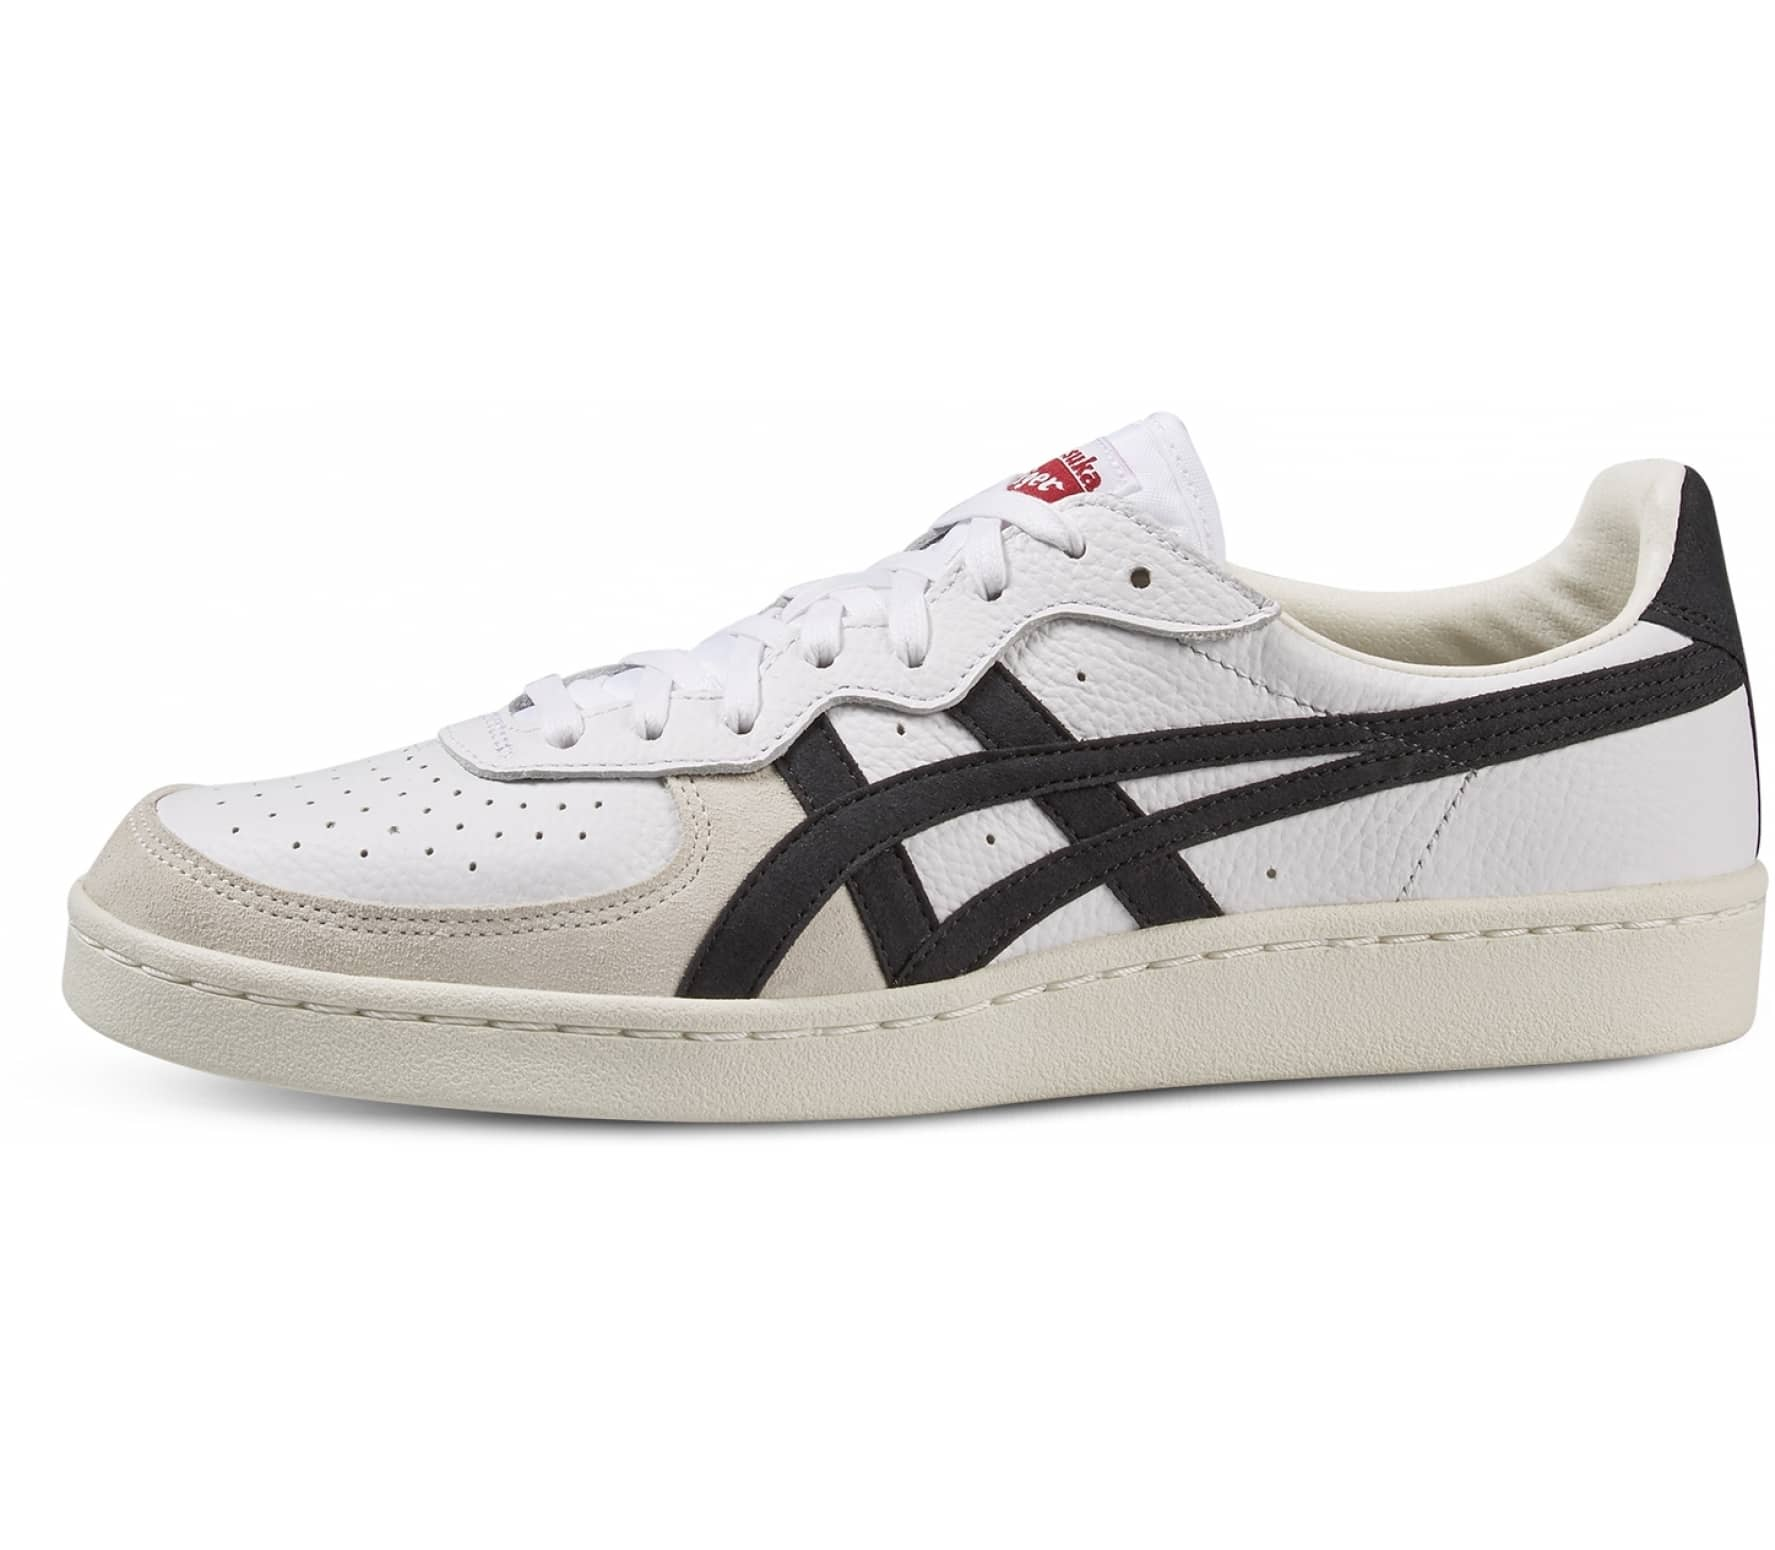 new styles ce624 e0b63 Onitsuka Tiger GSM Sneaker Unisex Sneakers white